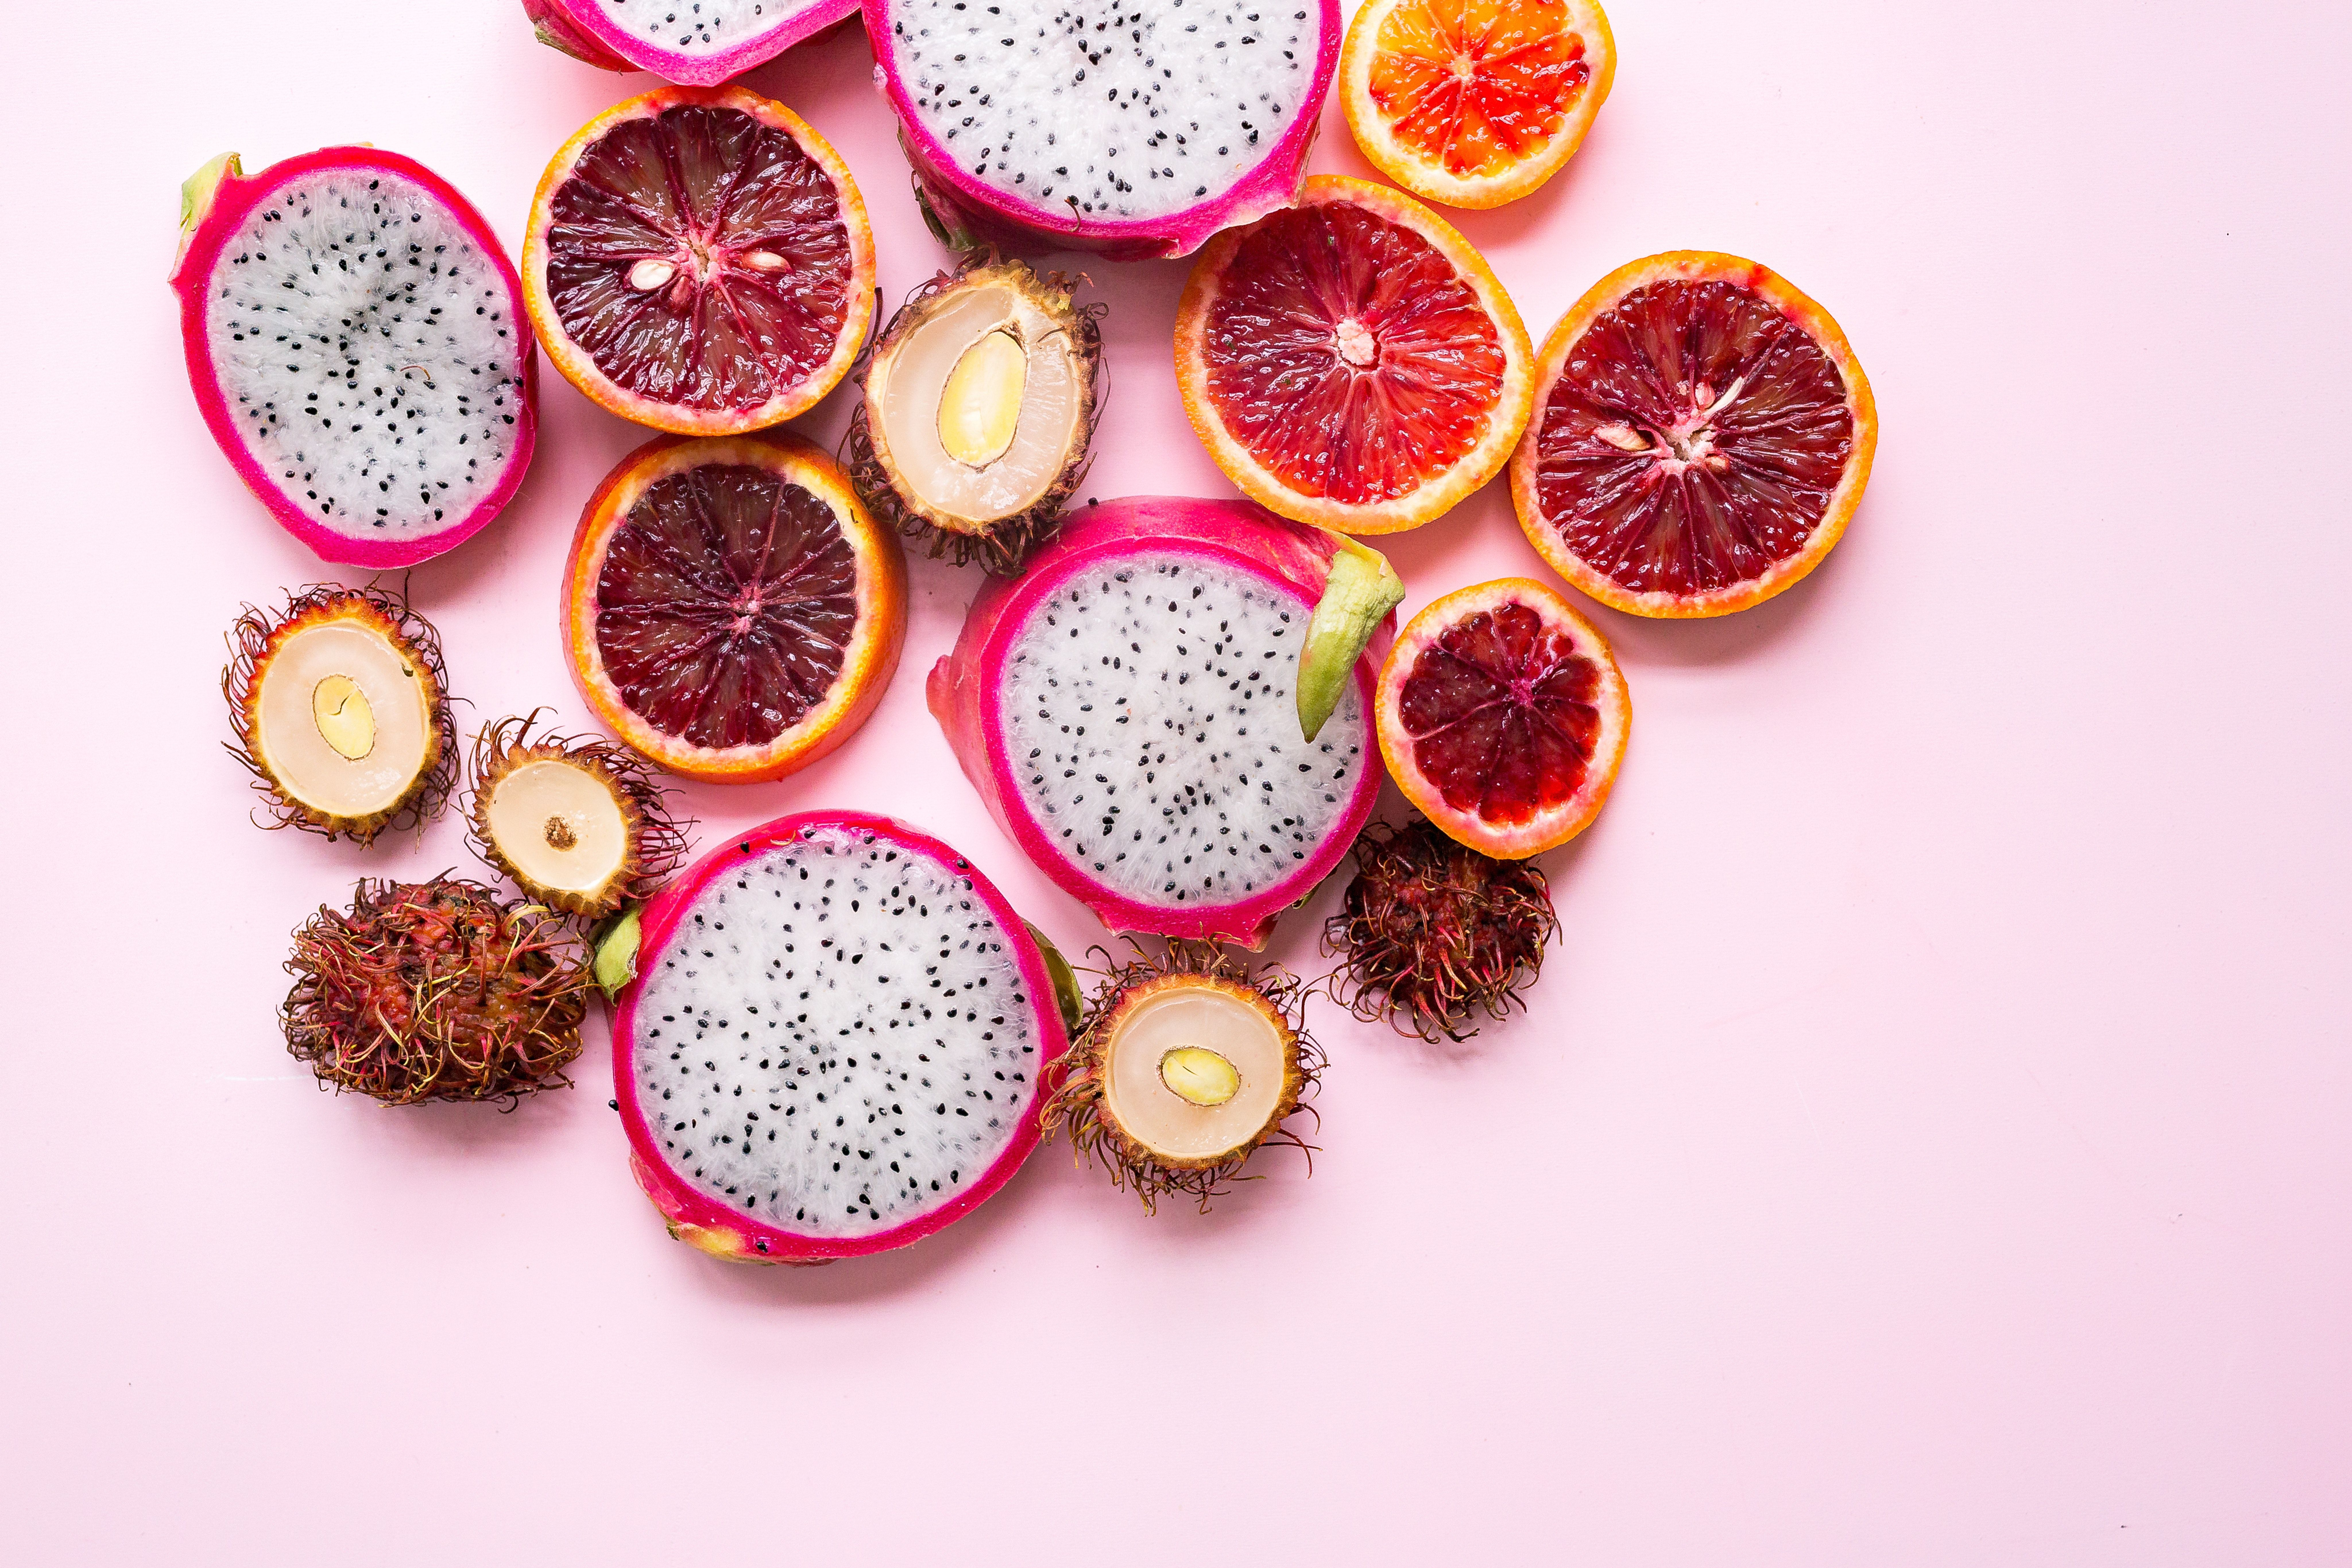 Slices of blood oranges dragon fruit and tropical fruit kitchen